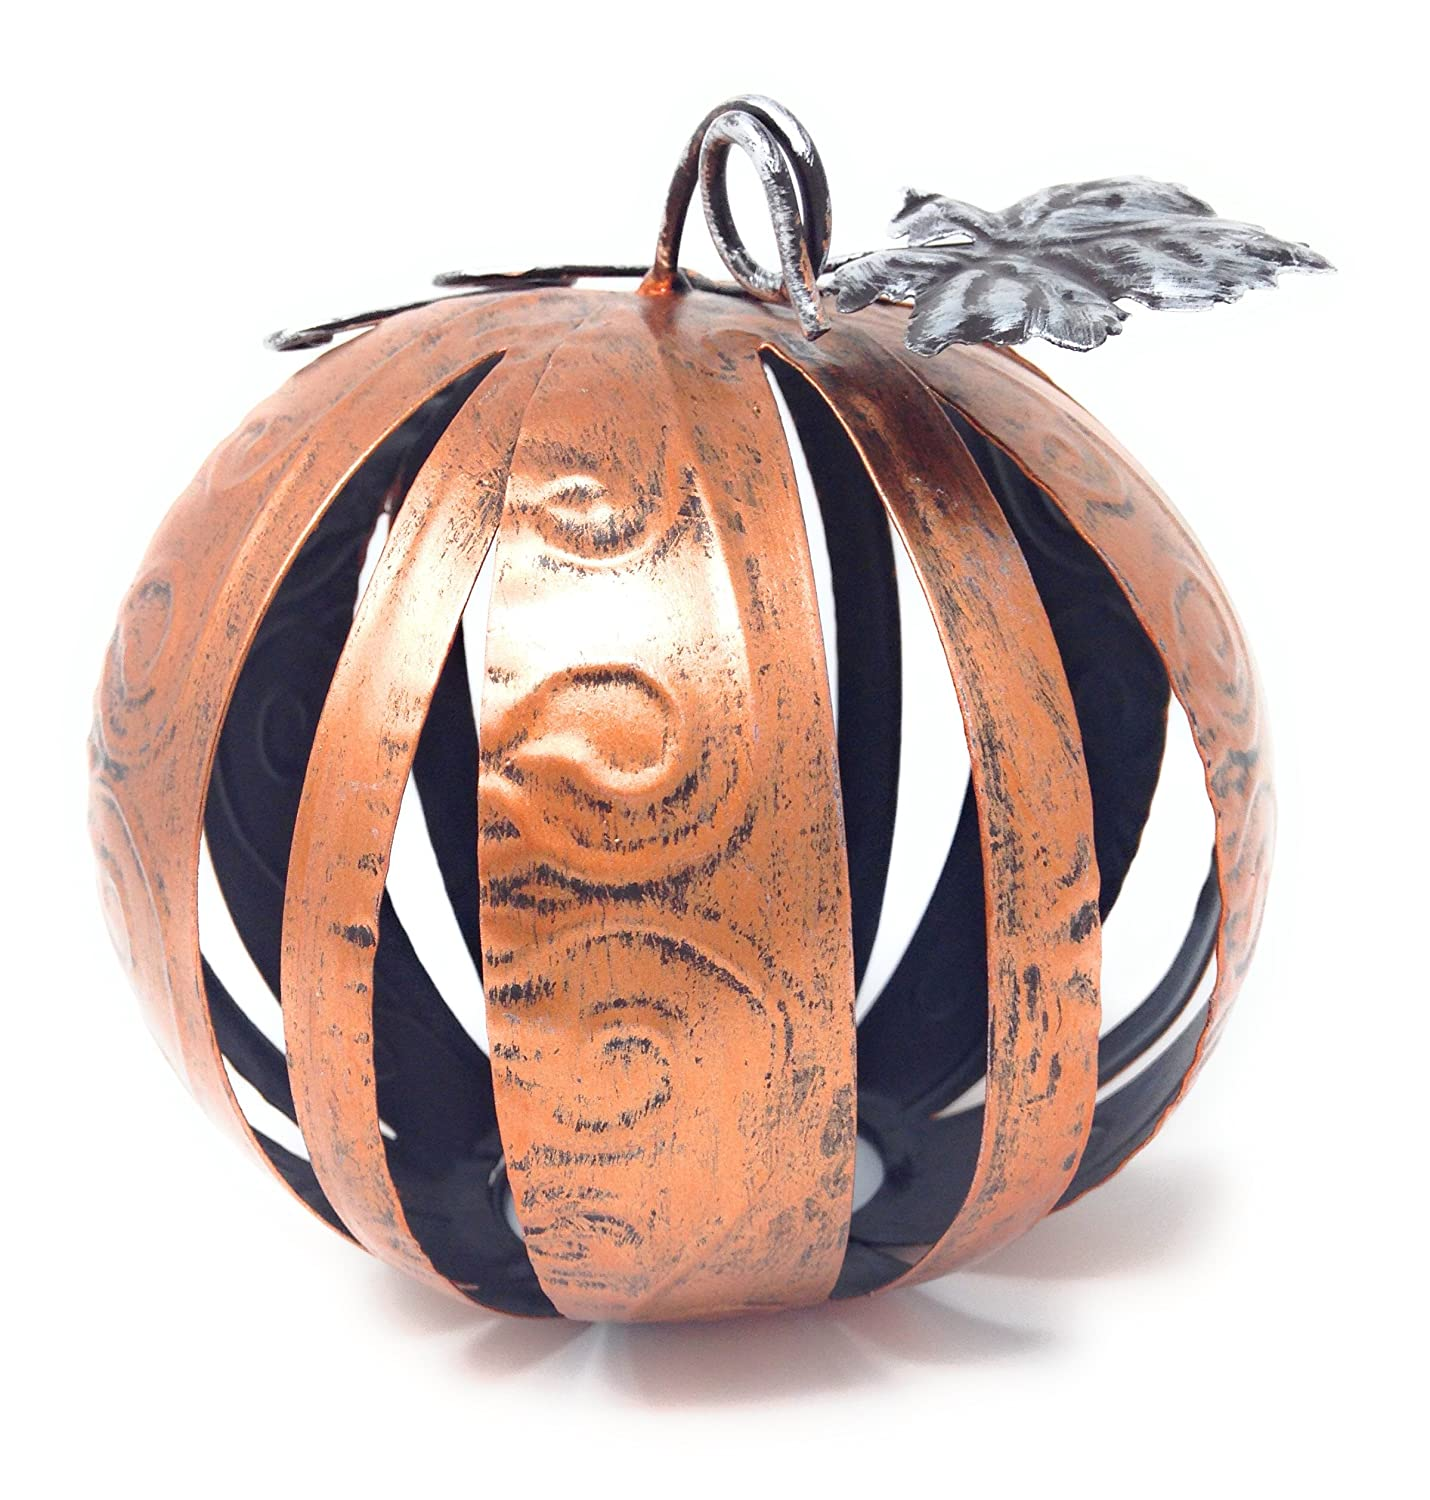 Haute Listings Small Orange Band Metal Band Decorative Pumpkin Sphere with Galvanized Leaves